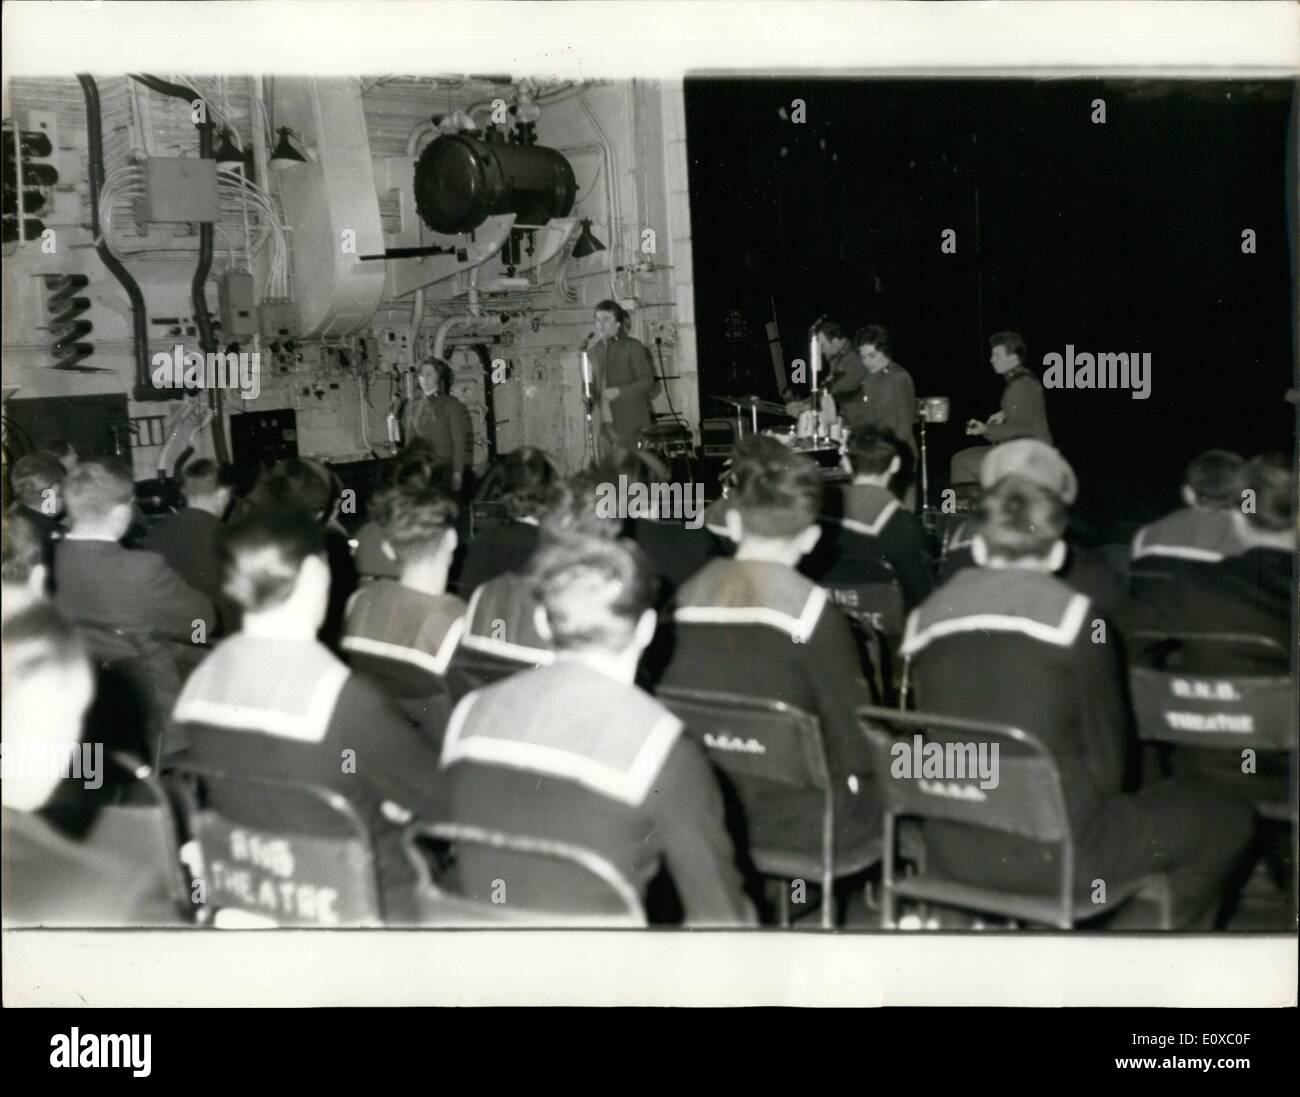 Mar. 03, 1966 - The Joy Strings Entertain the Navy: The Salvation Army pop group, the Joy Strings, yesterday entertained - Stock Image